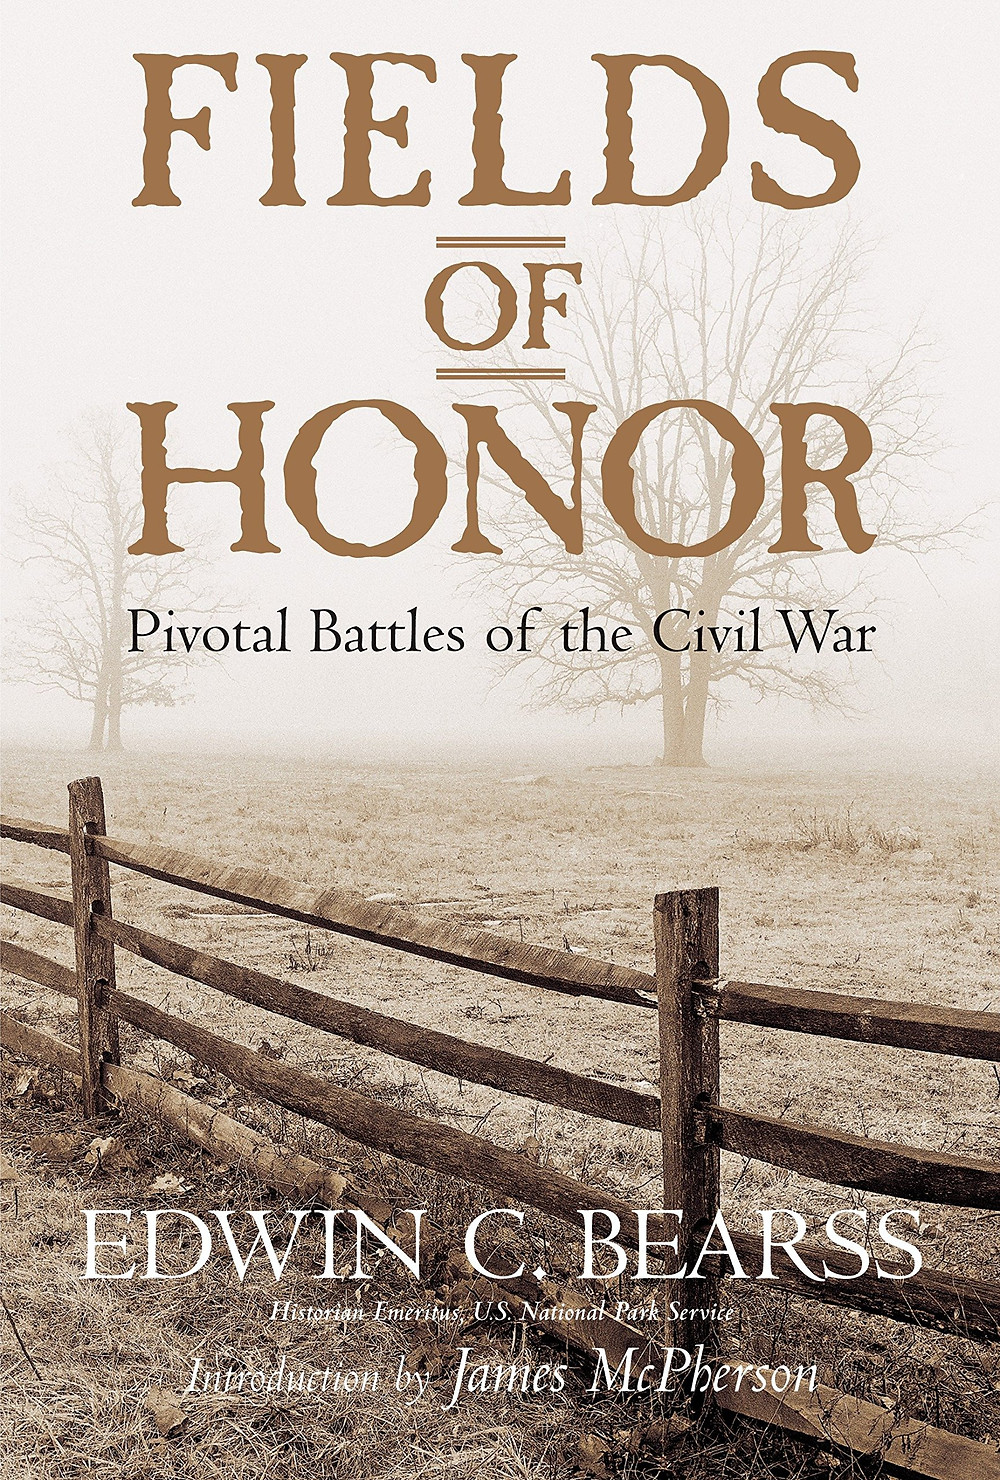 American Civil War Round Table UK / Book Review / Fields of Honor